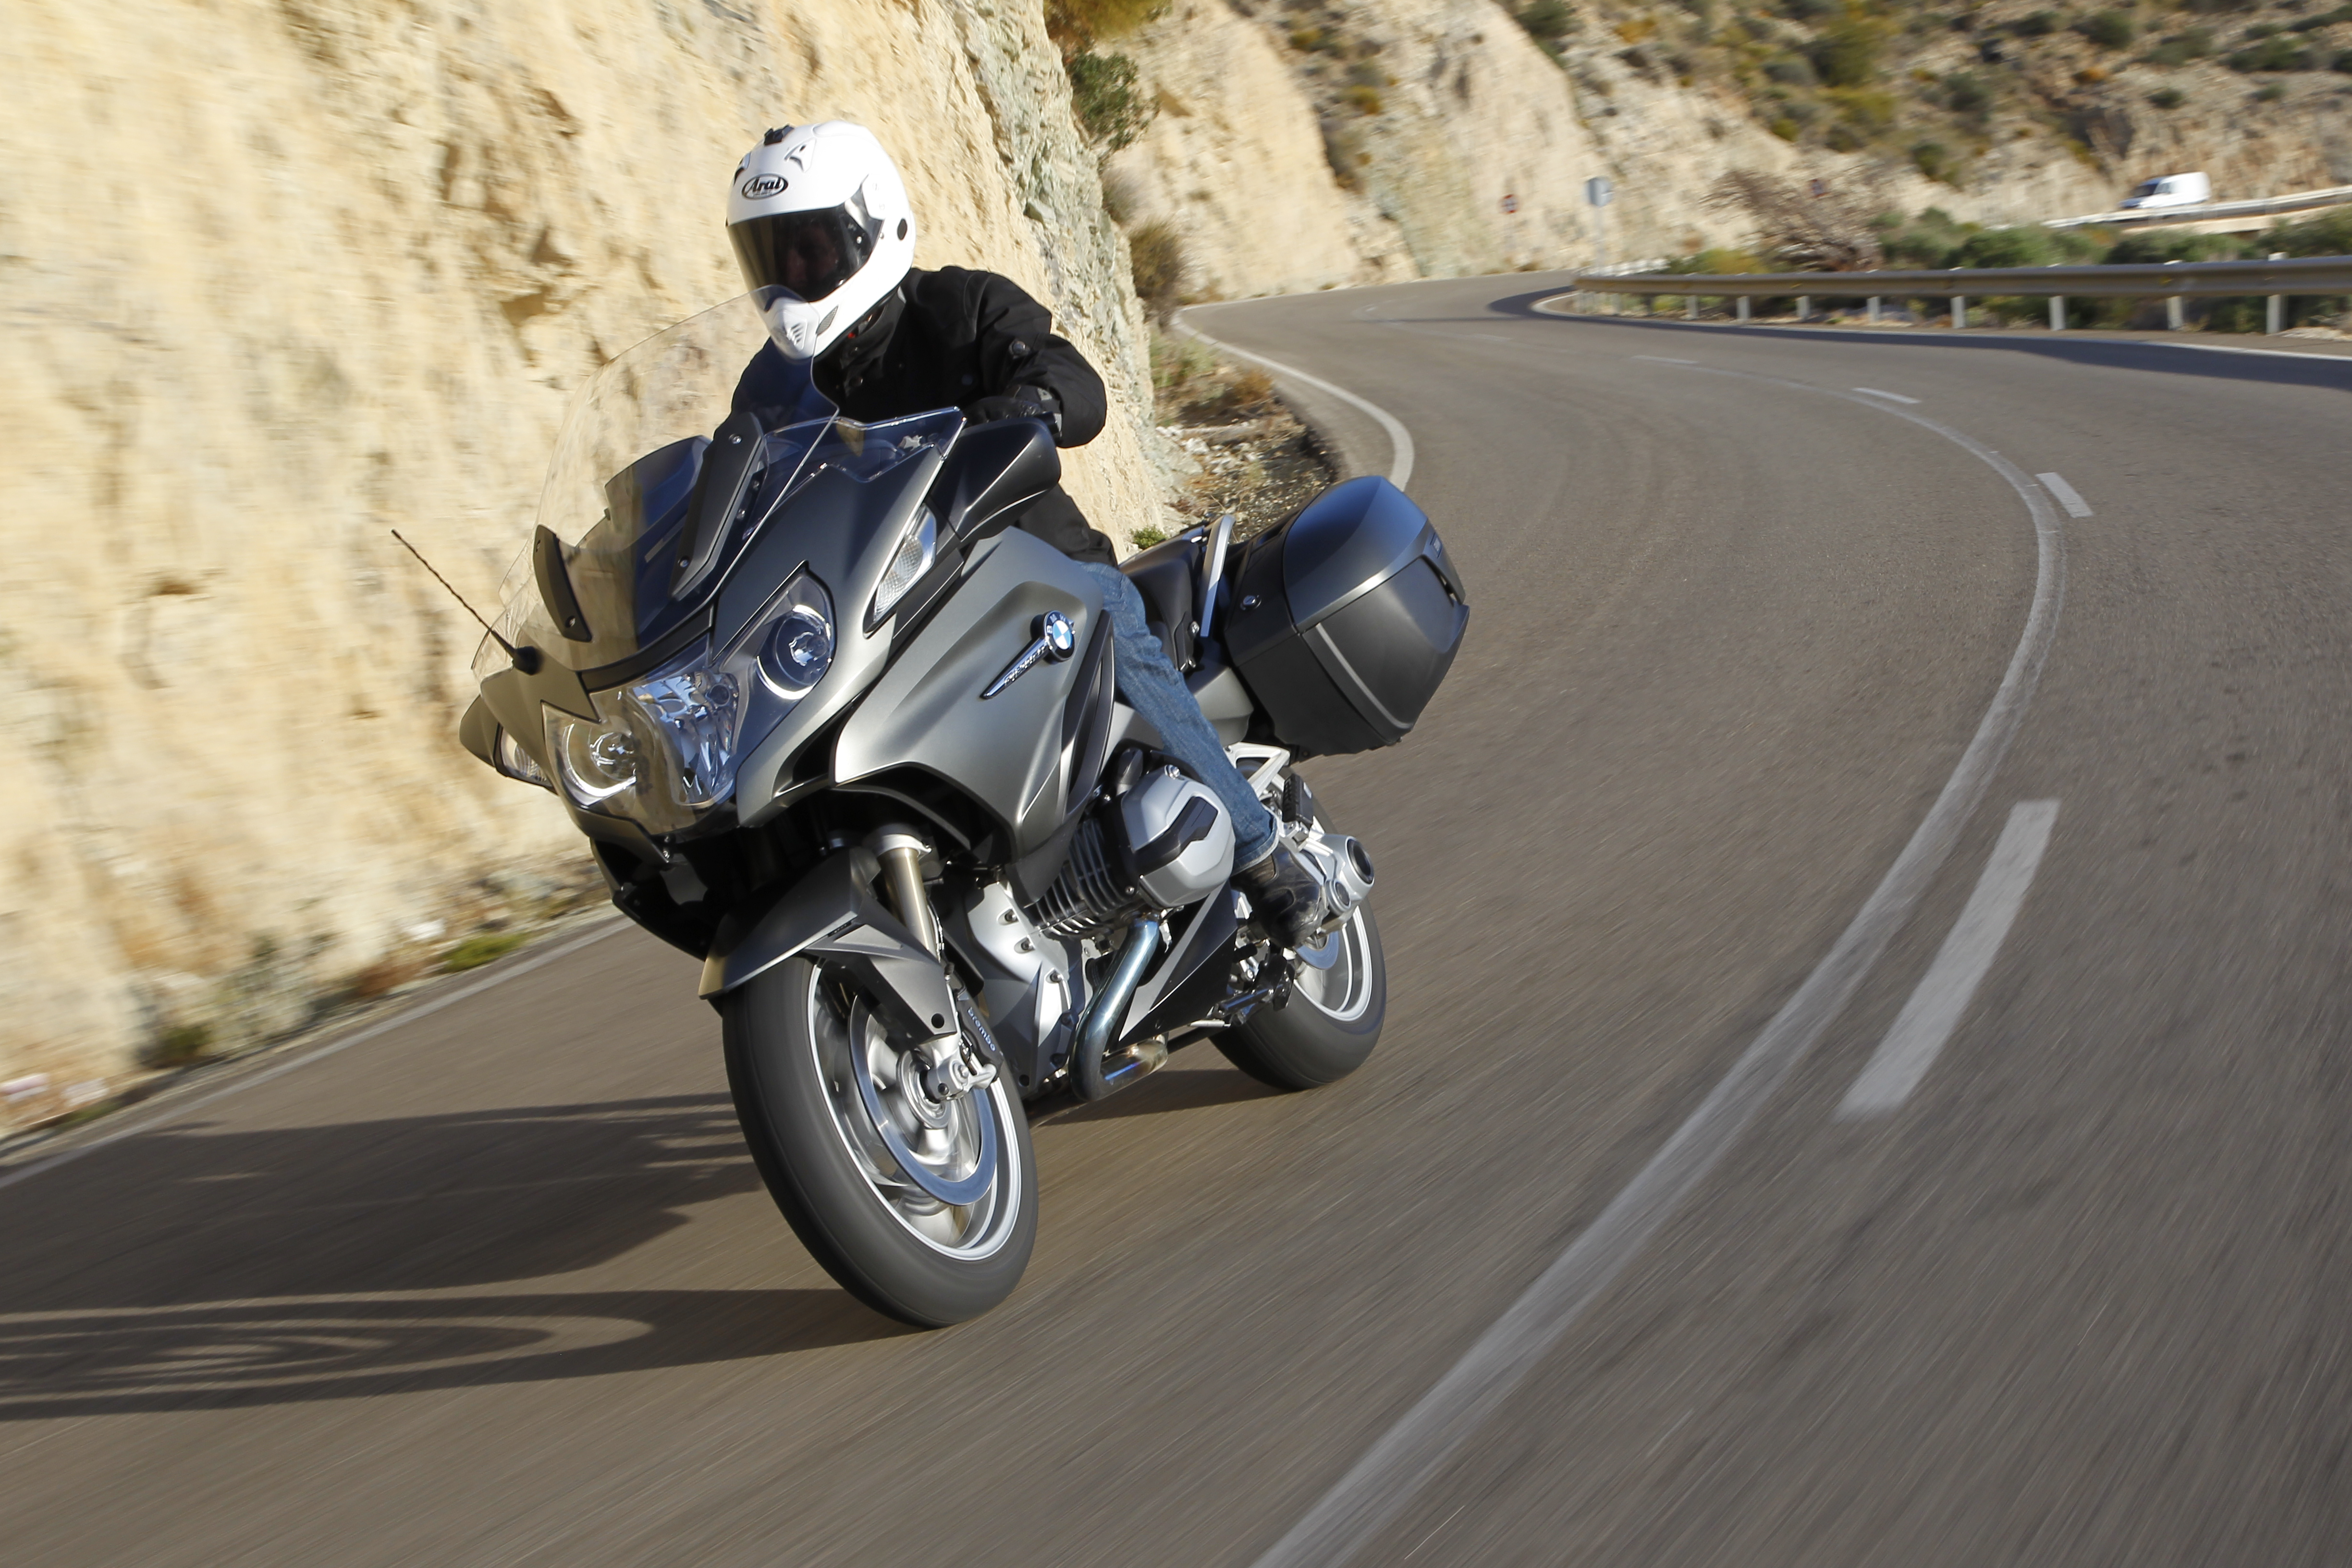 BMW tells R1200RT owners not to ride bikes